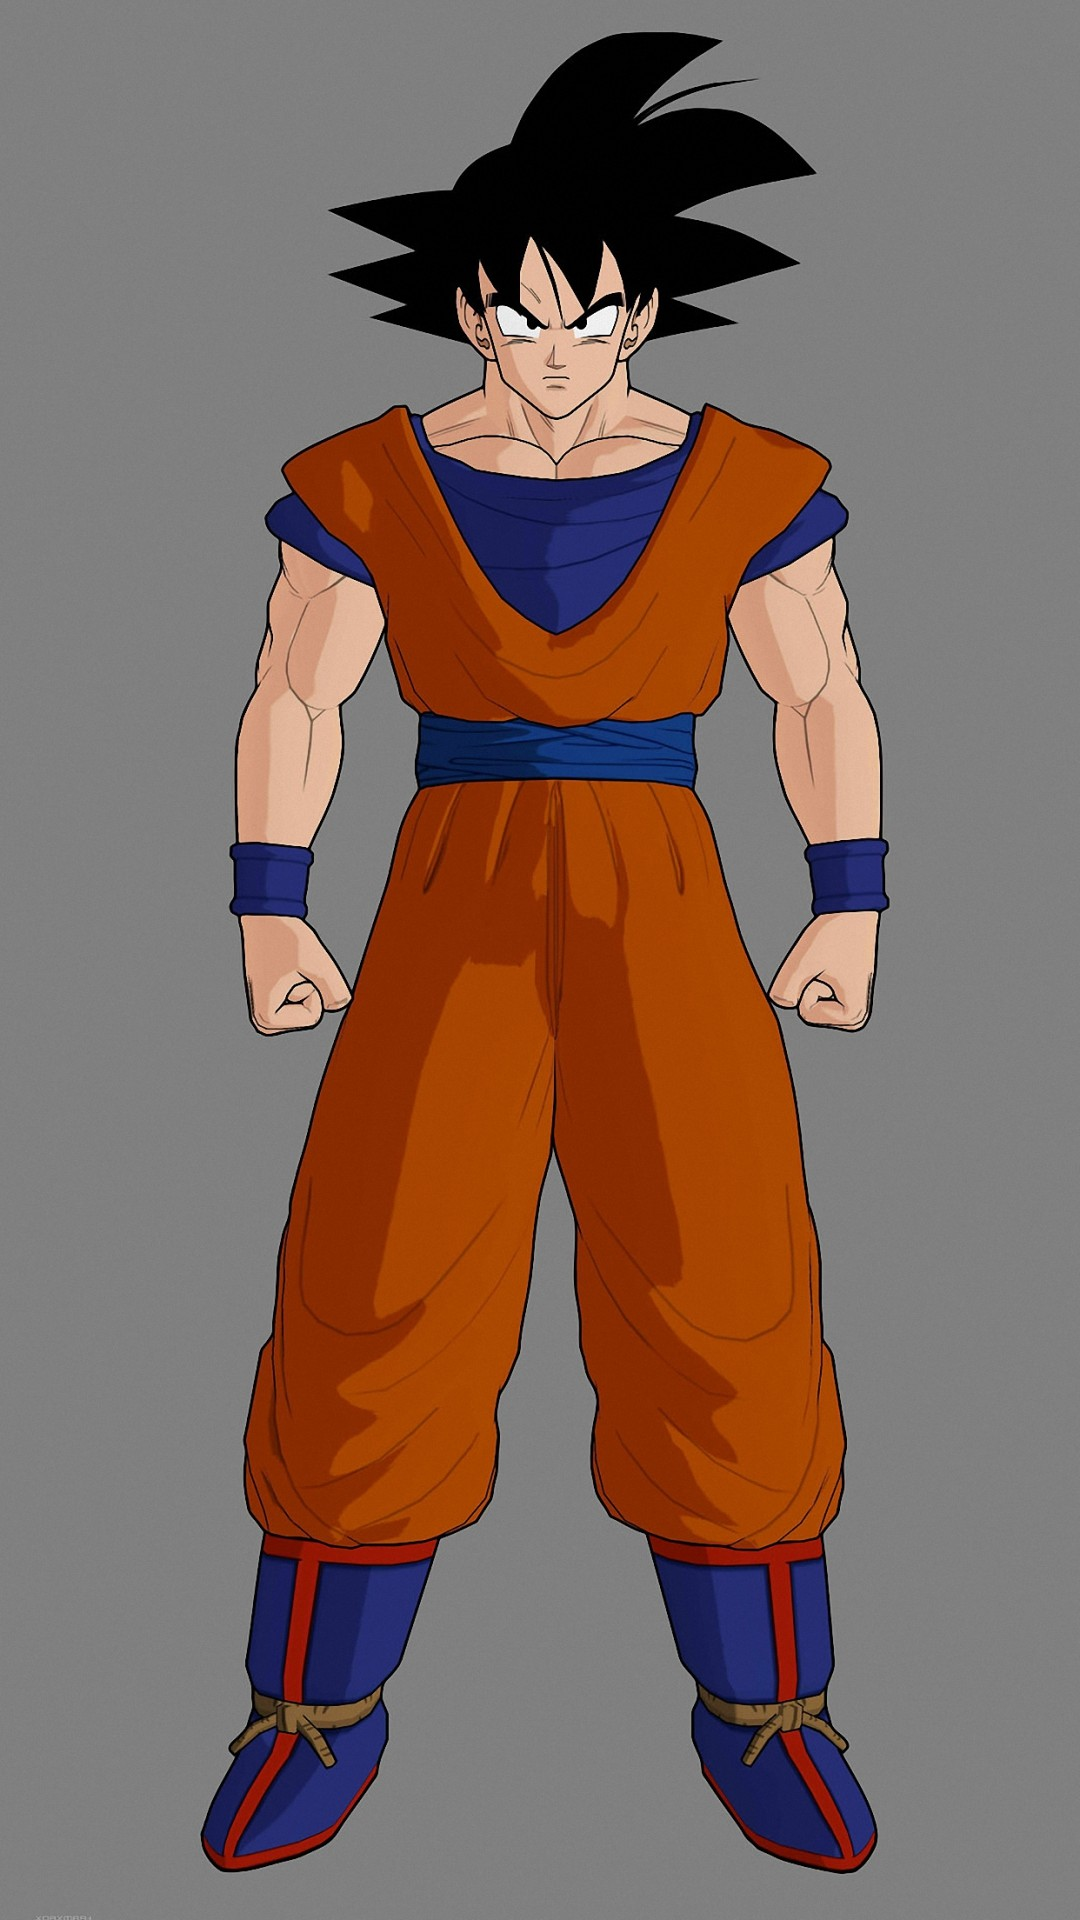 Res: 1080x1920, son goku iphone 6 wallpapers HD